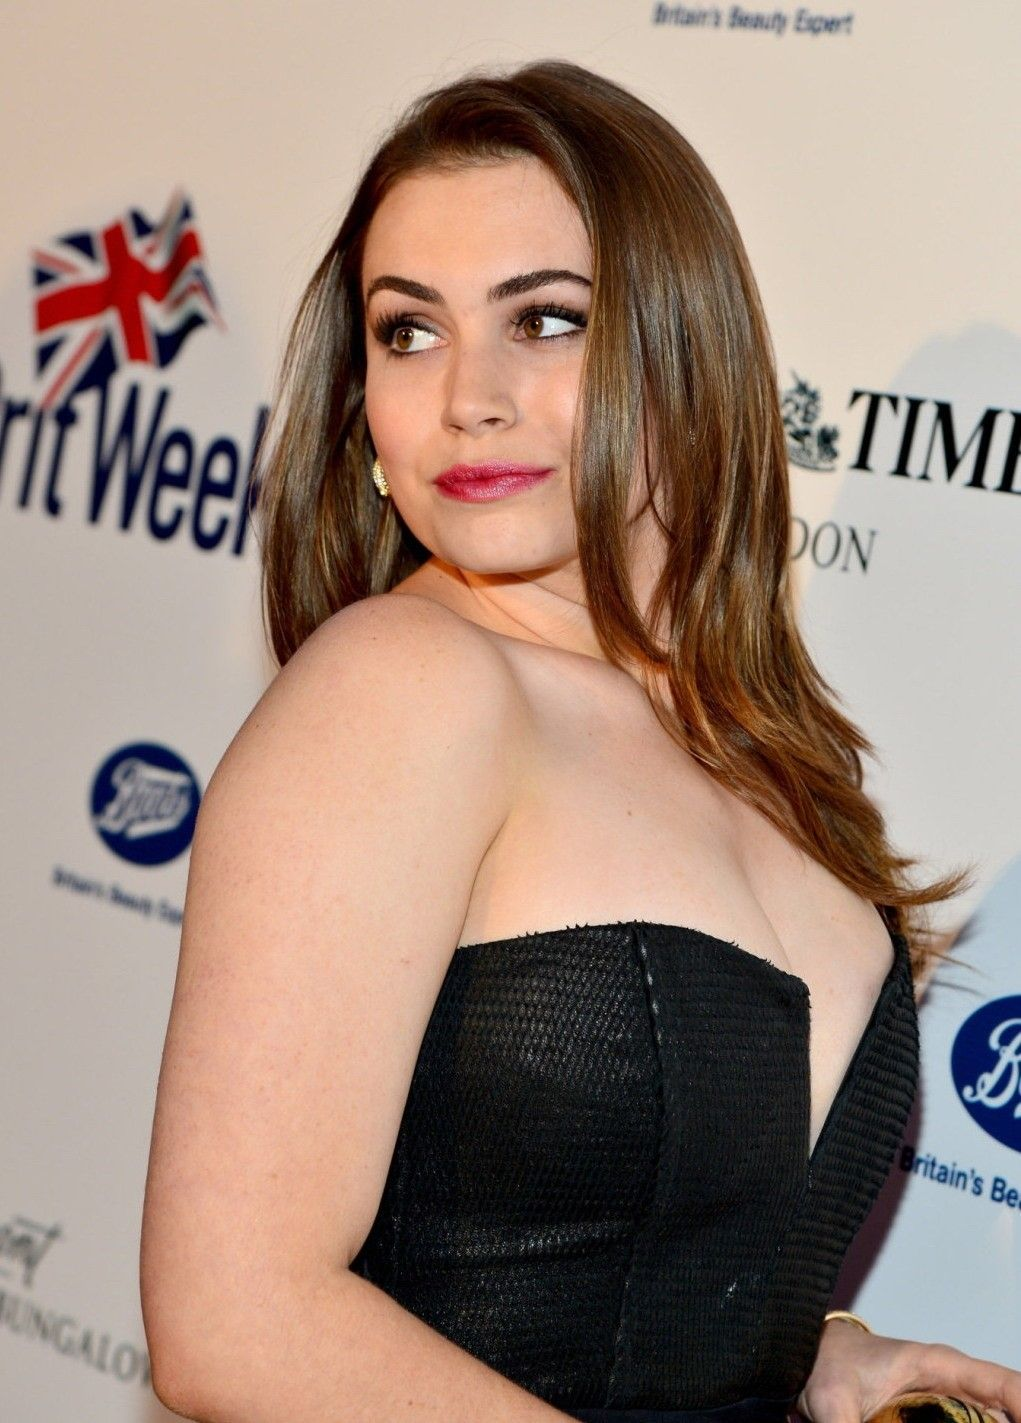 Boobs Sophie Tweed-Simmons nudes (87 photo), Topless, Paparazzi, Selfie, butt 2019